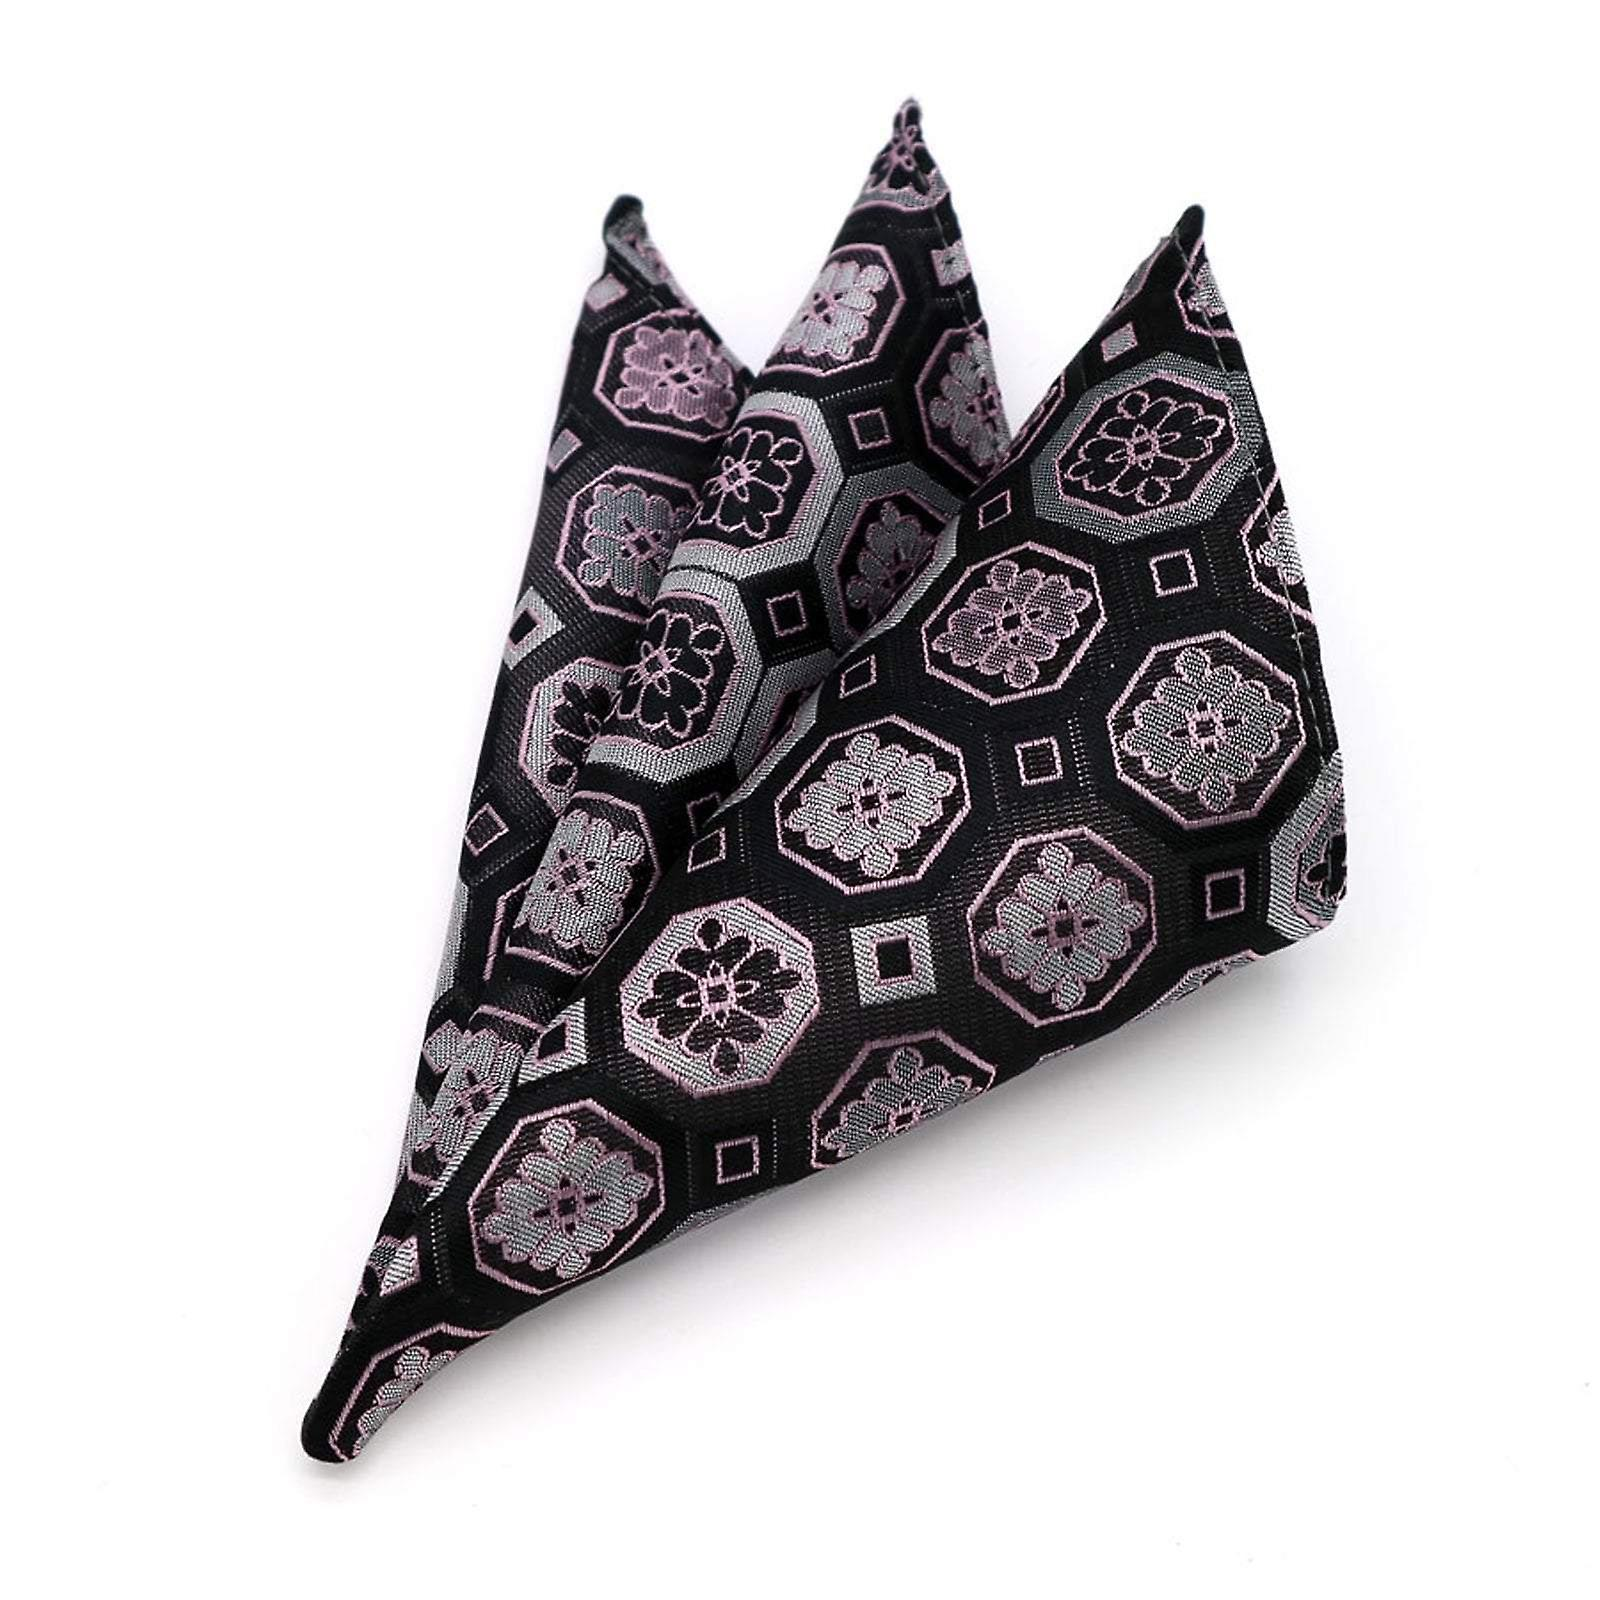 Aubergine & pink pattern men's hanky pocket square